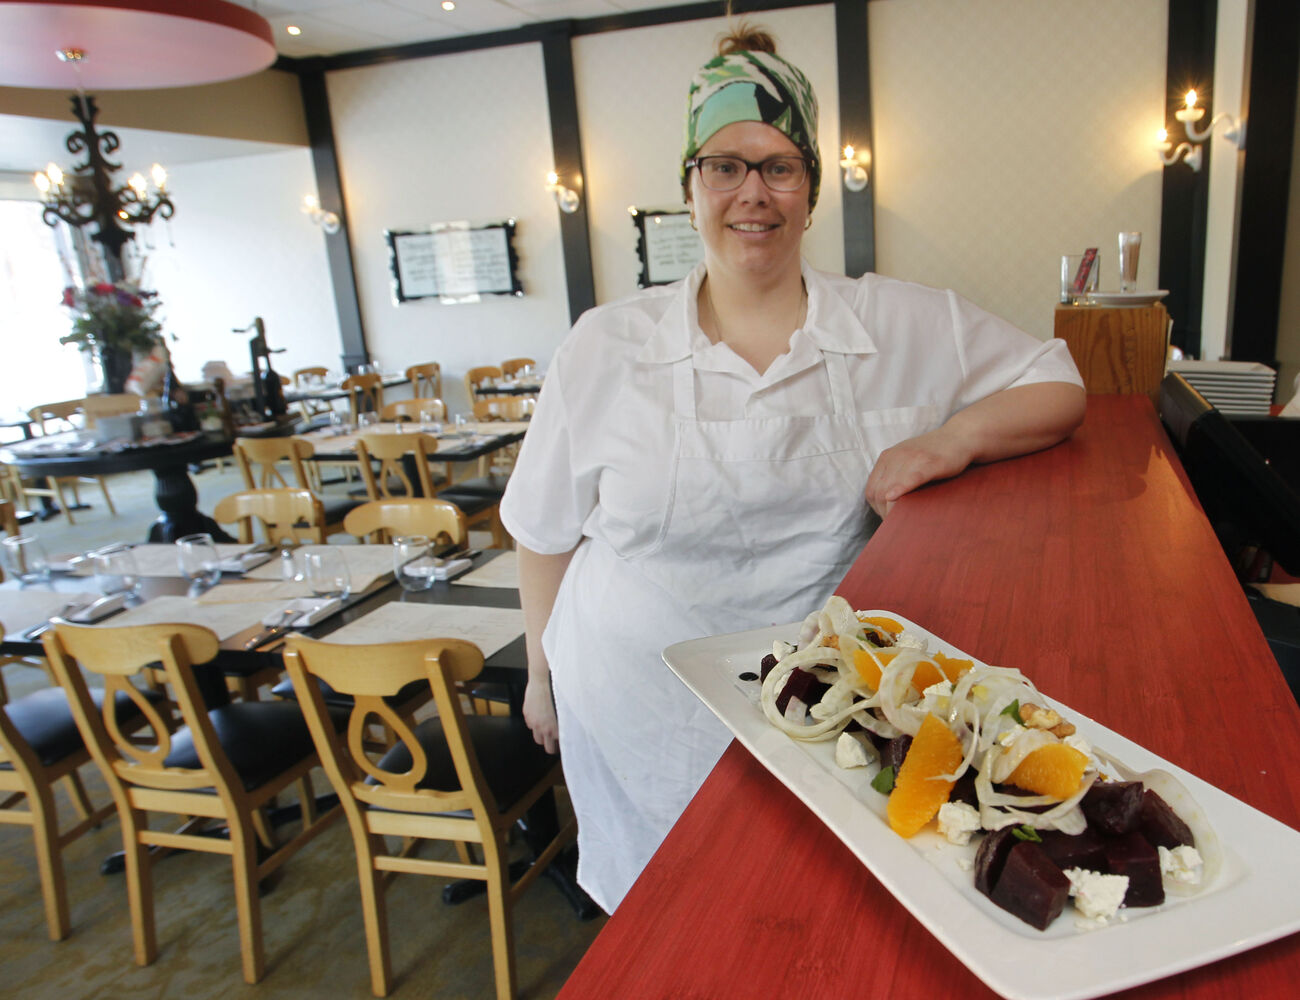 Co-owner Heather Neskar with the agro dolce beet salad. (Wayne Glowacki / Winnipeg Free Press)